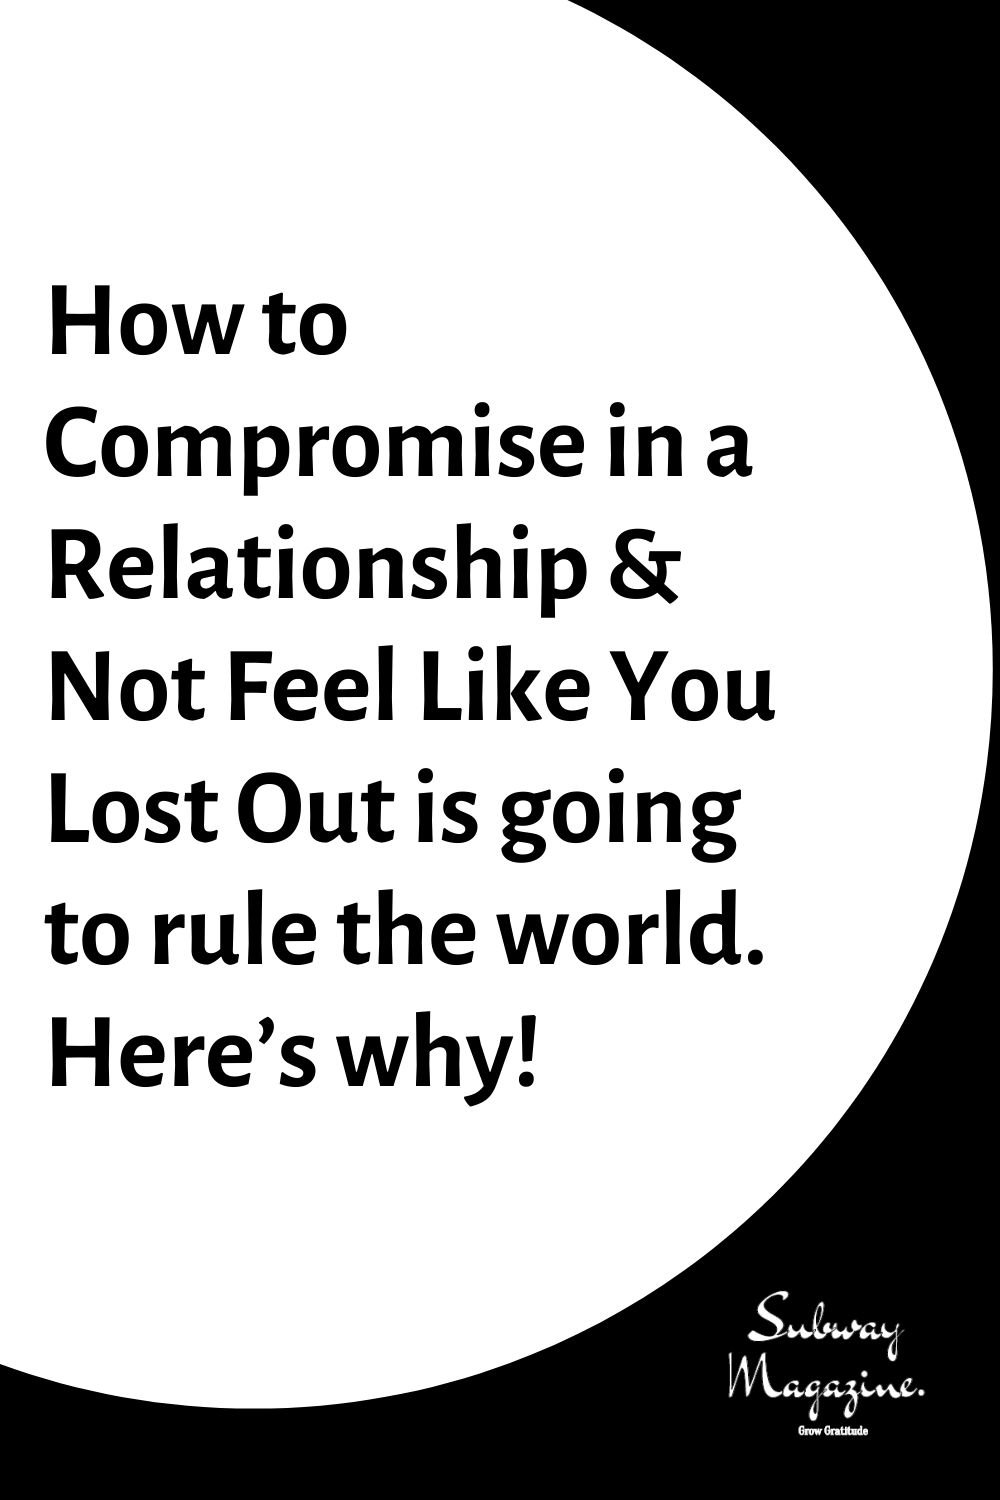 How To Compromise In A Relationship Not Feel Like You Lost Out Is Going To Rule The World Here Relationship Experts Relationship Dysfunctional Relationships